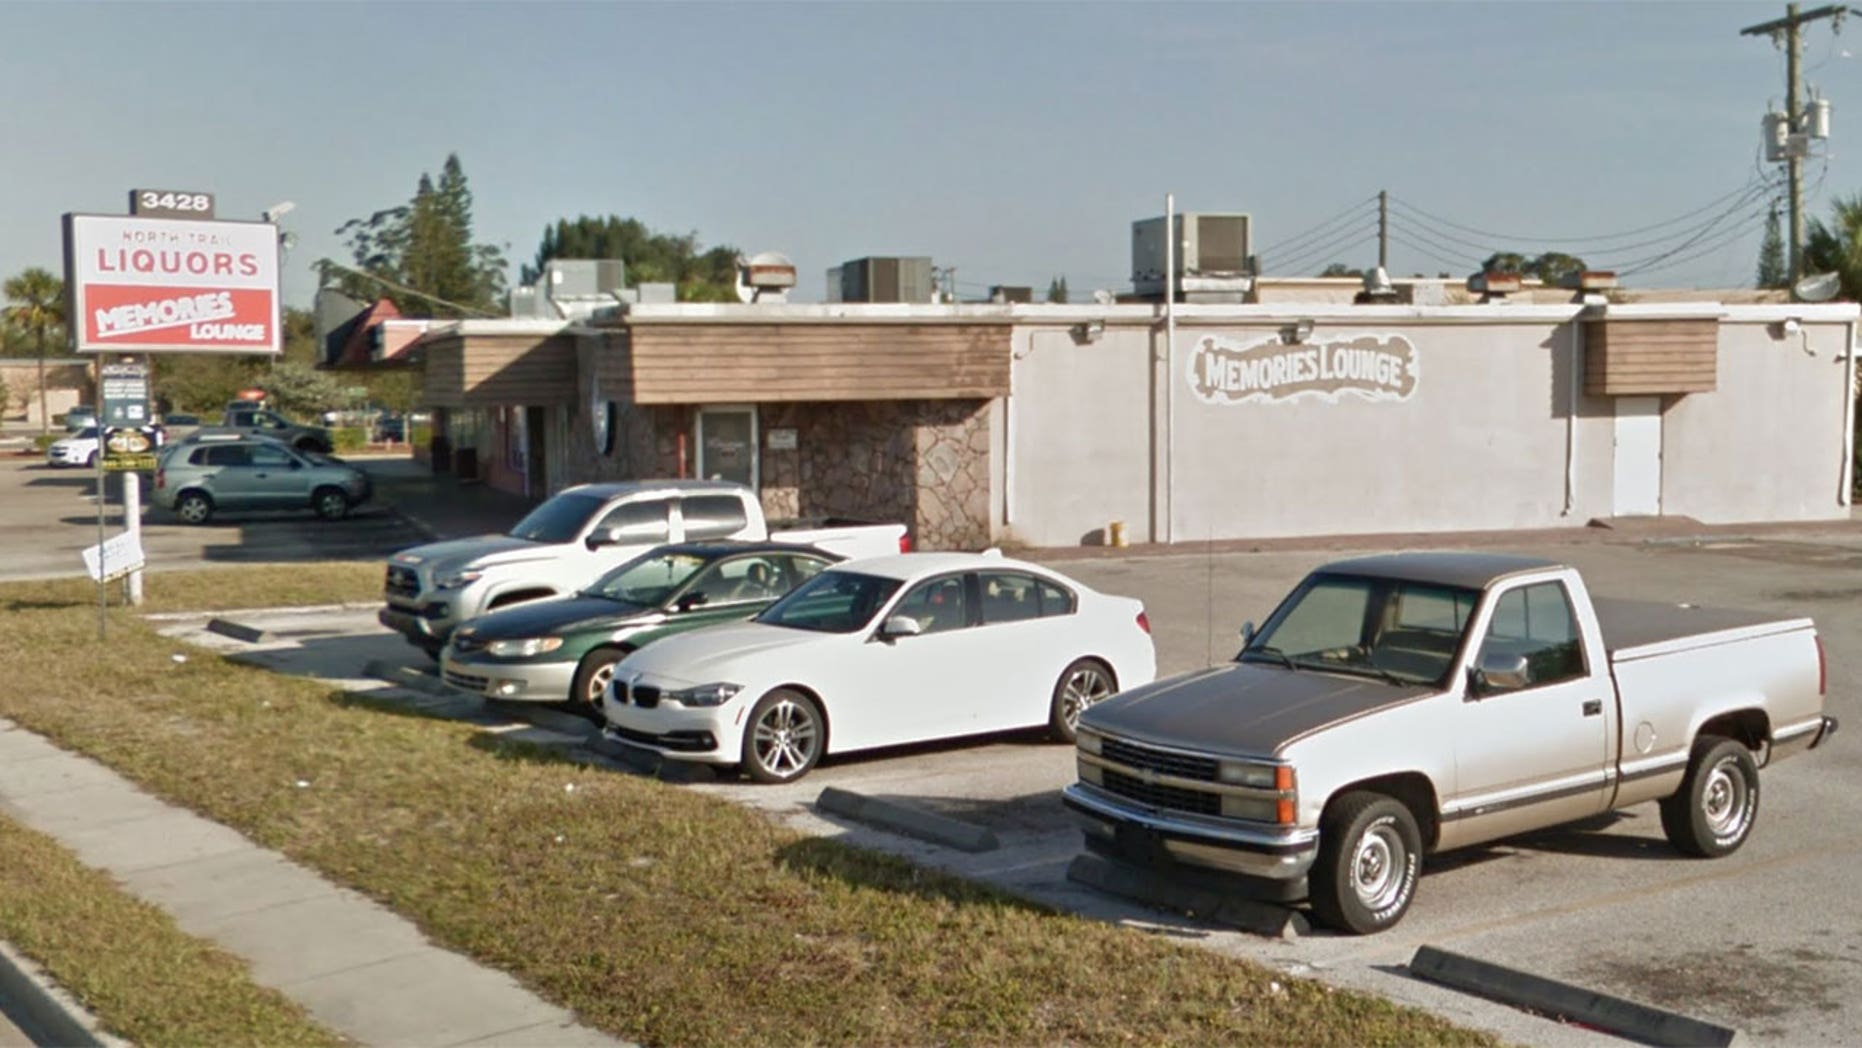 Memories Lounge in Sarasota, Fla., was hit by two very bold thieves.